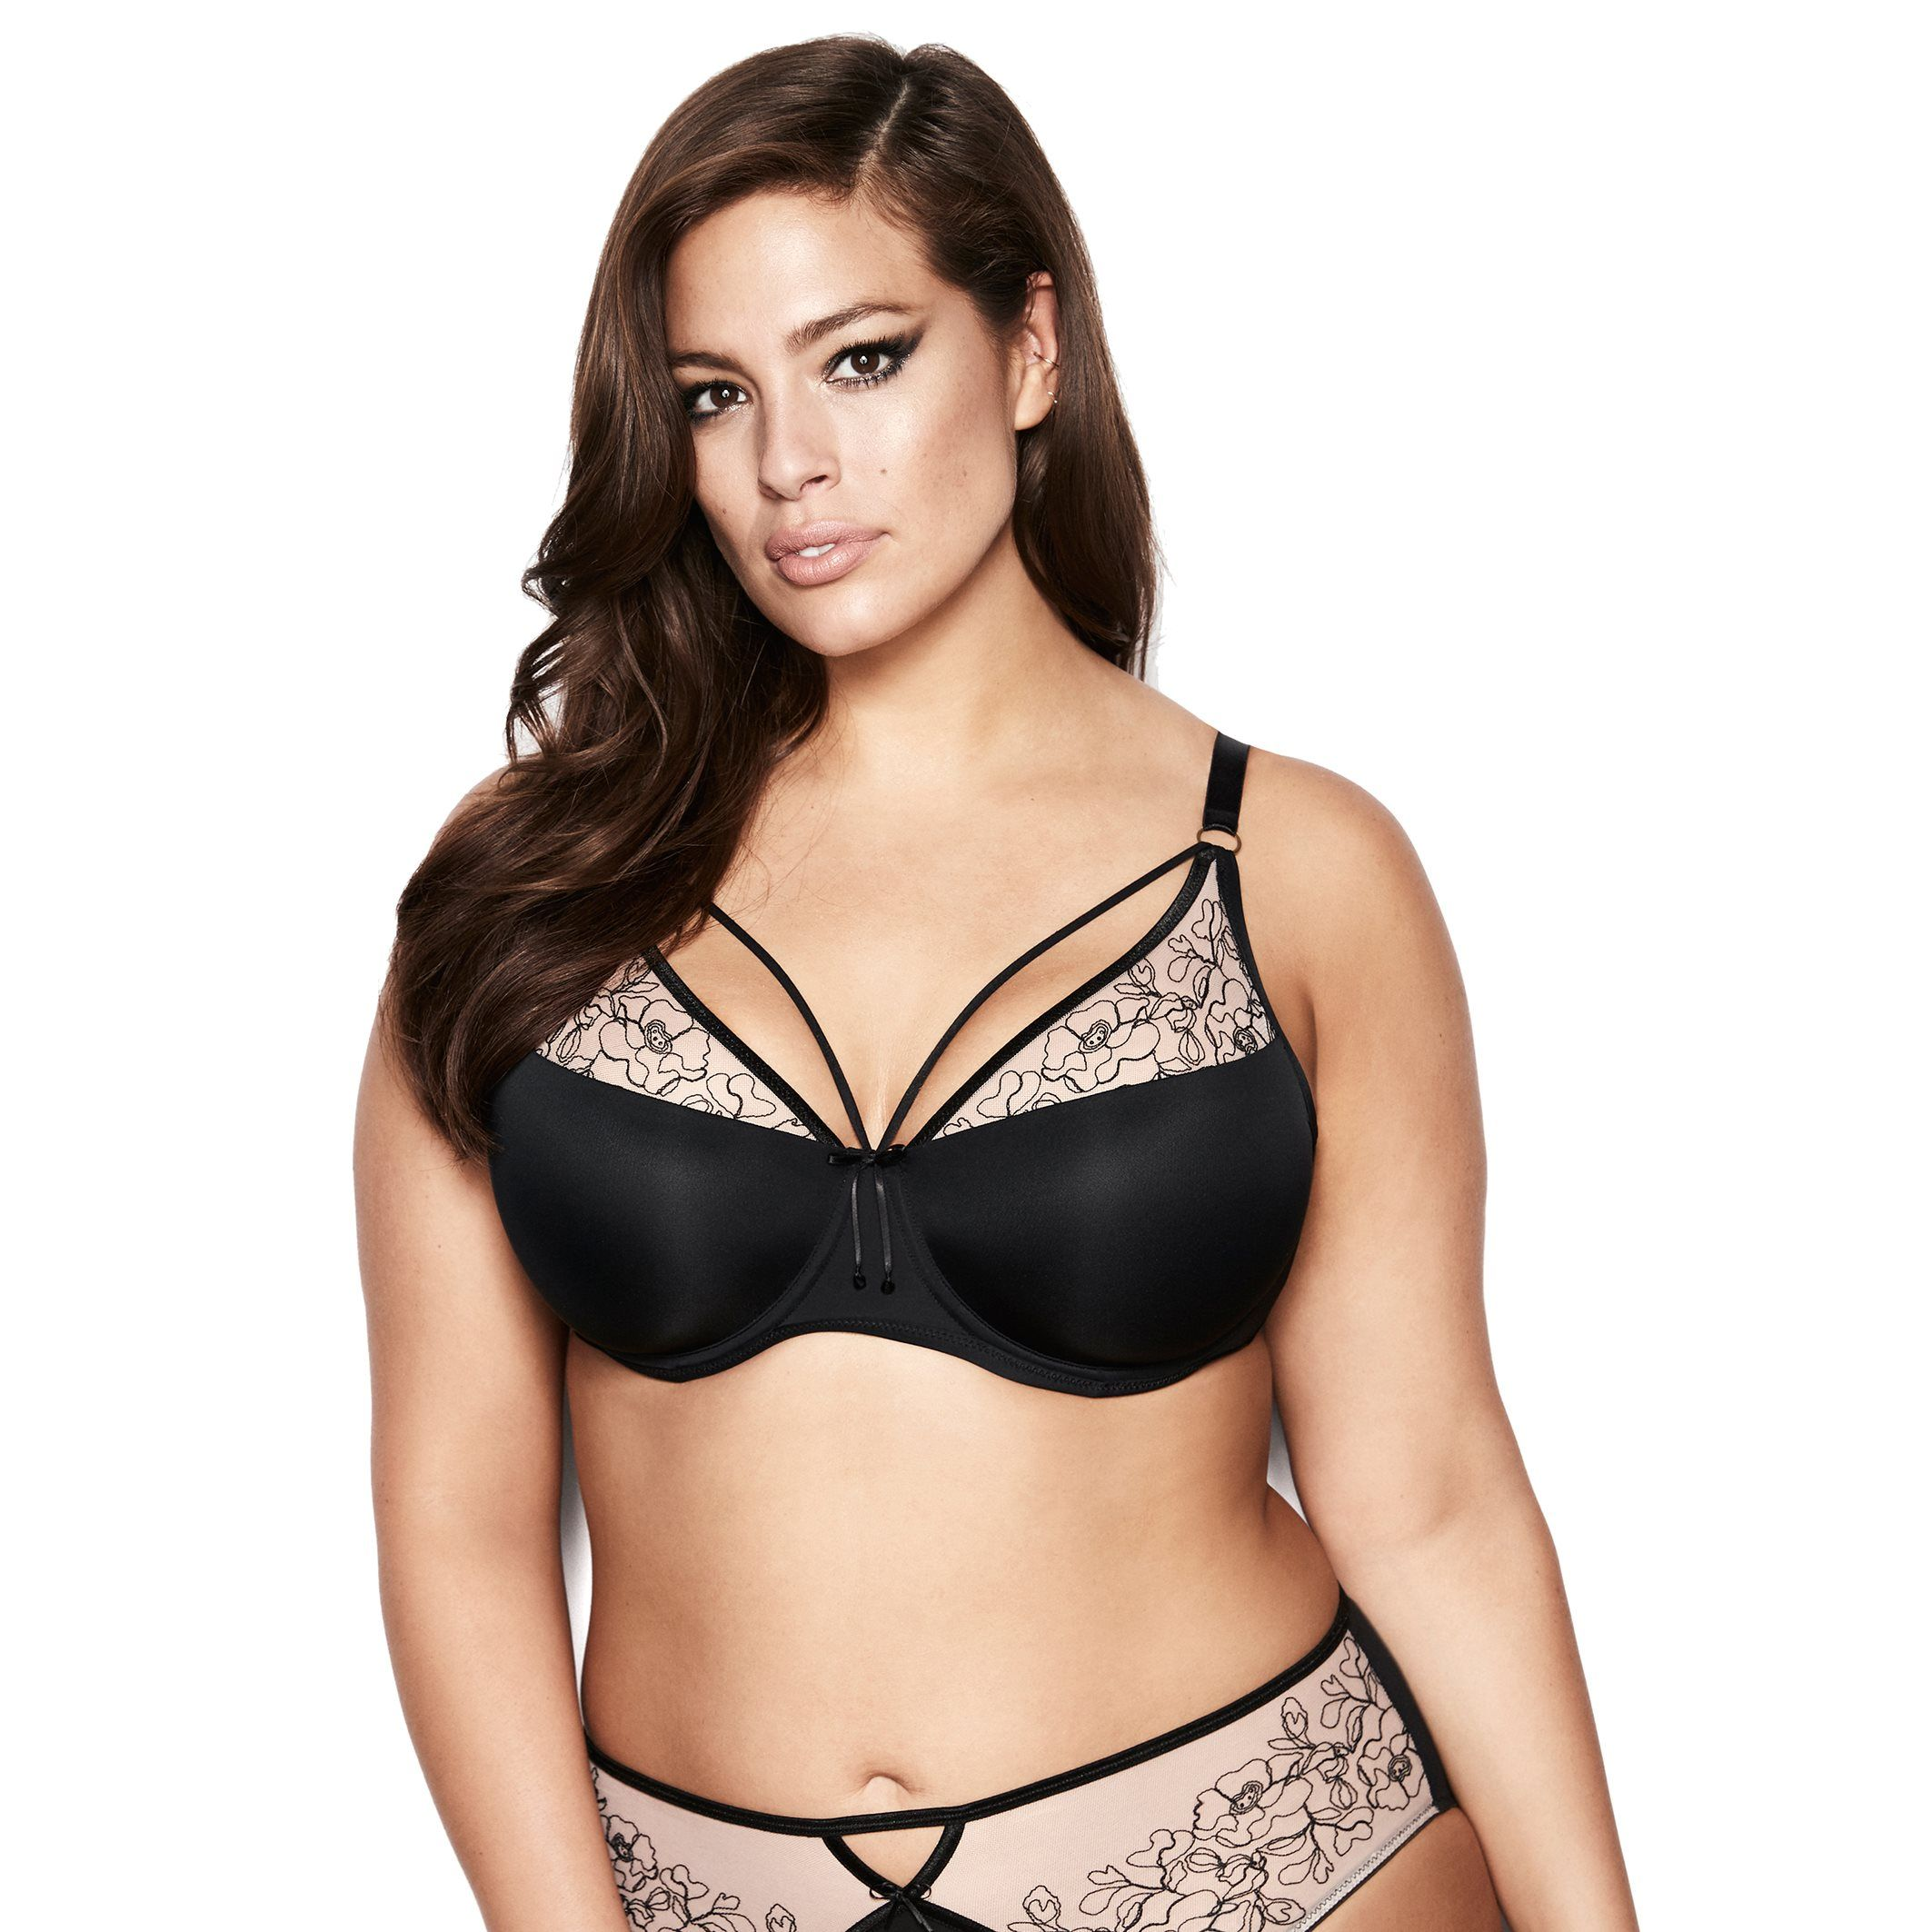 e2fdda56431a1 Shop online for Ashley Graham Diva Demi Cup Bra. Find Bras